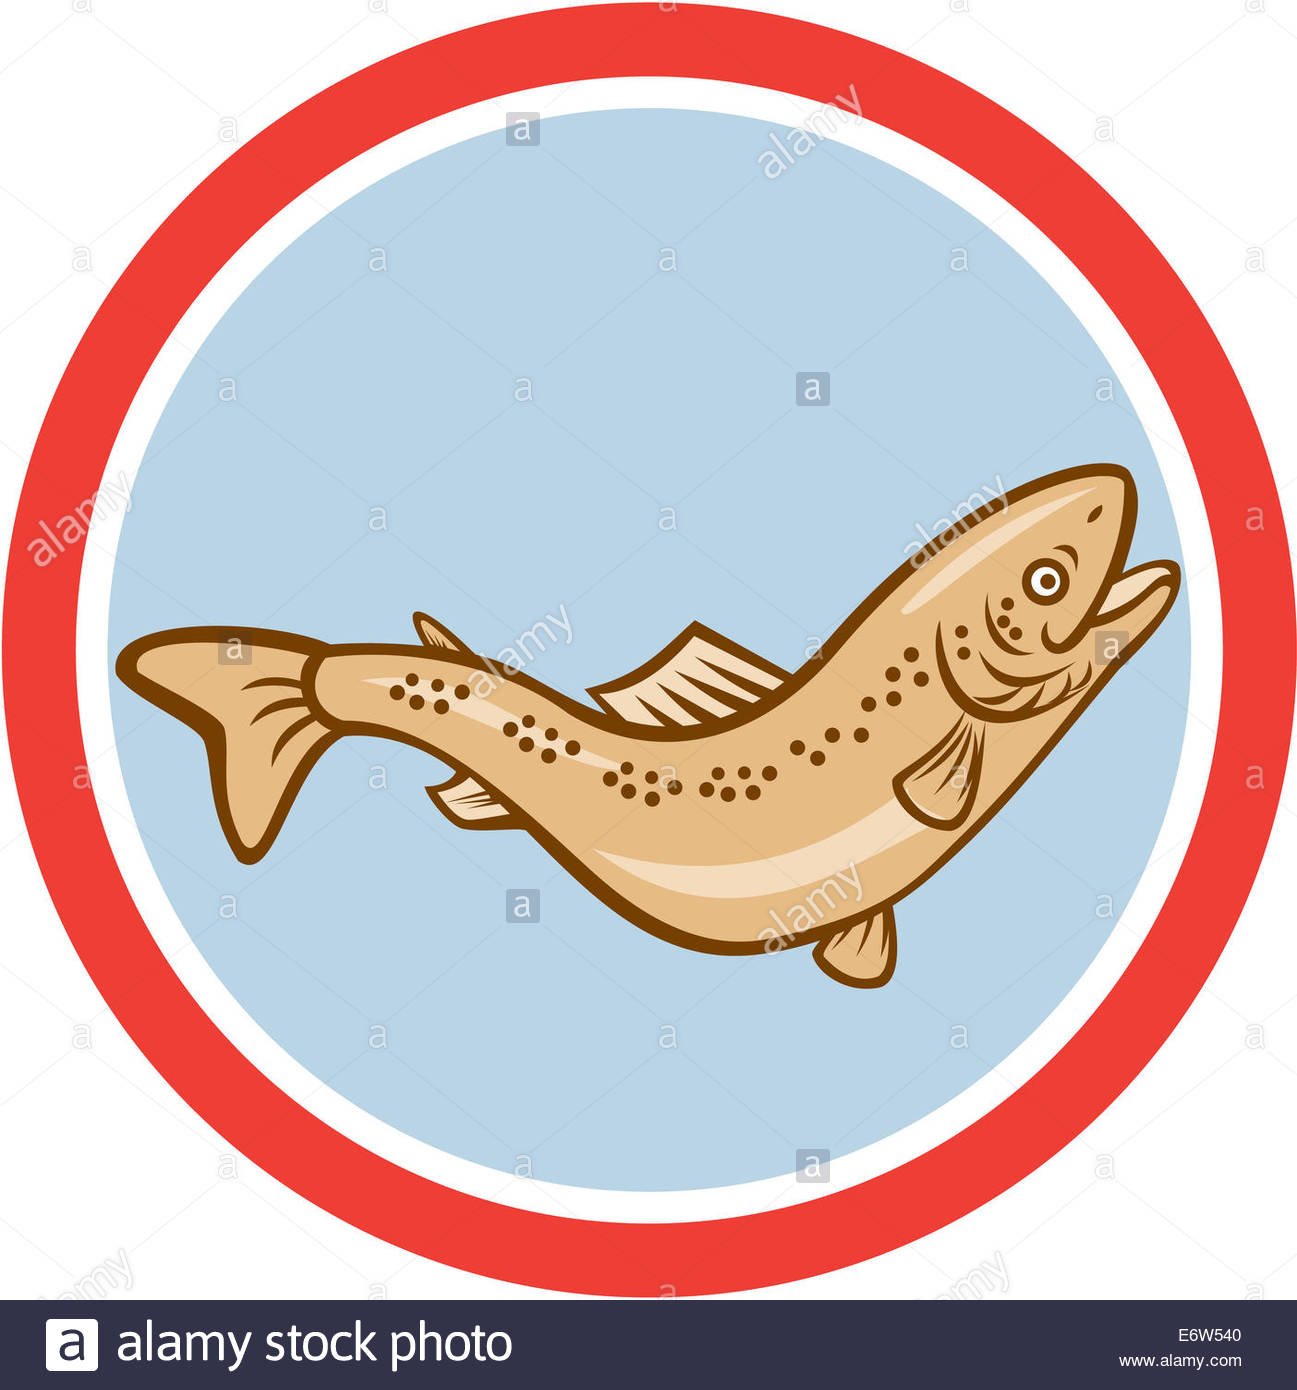 1297x1390 Illustration Of A Trout Rainbow Fish Jumping Viewed From The Side